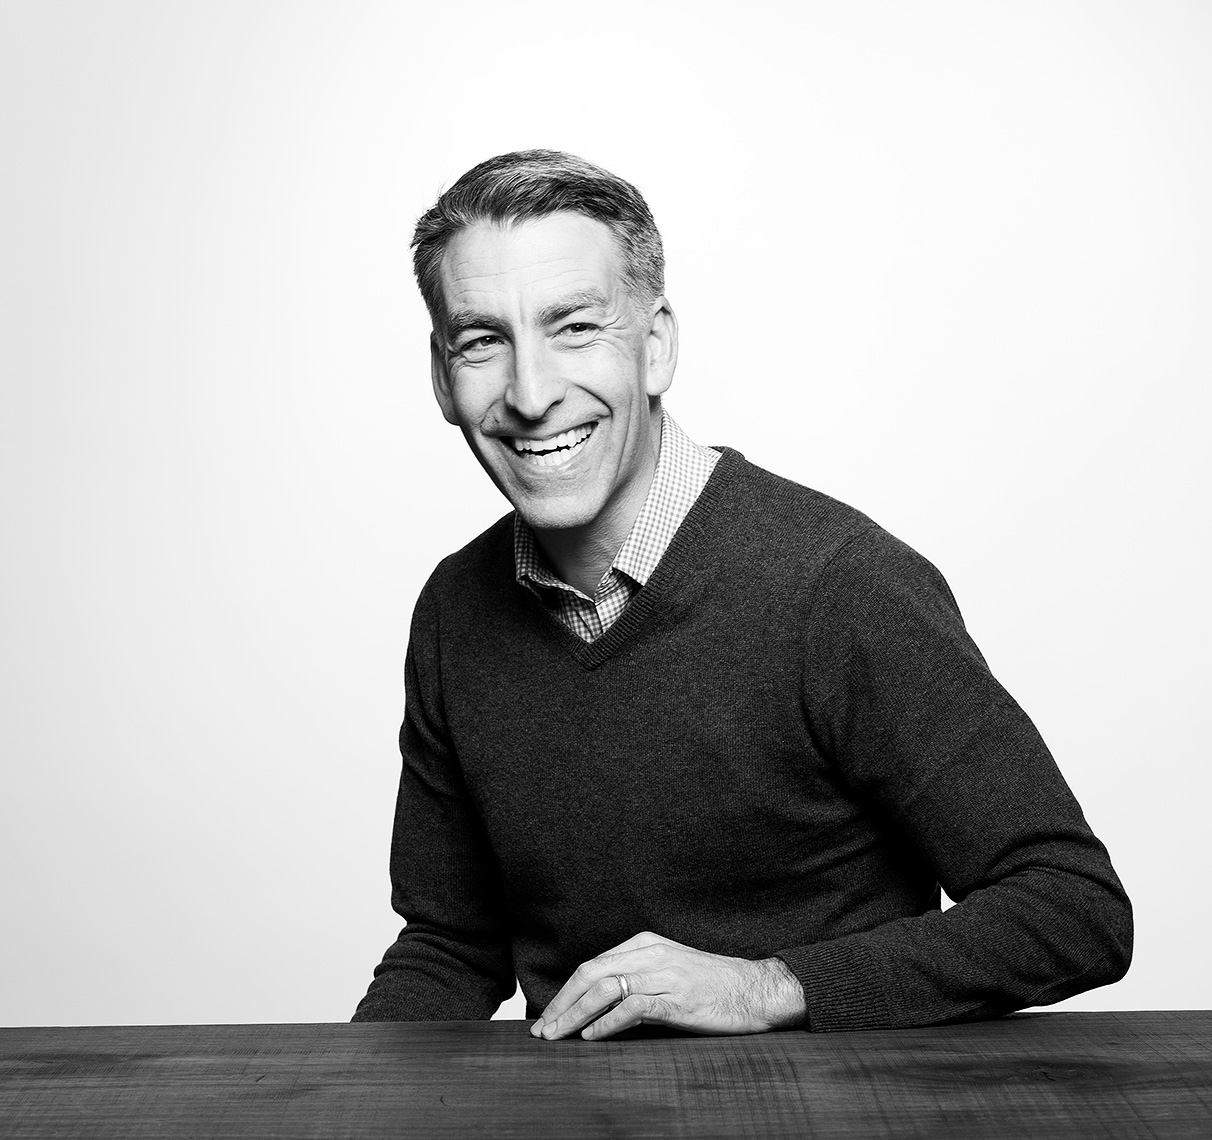 Redfin CEO - San Francisco portrait photographer